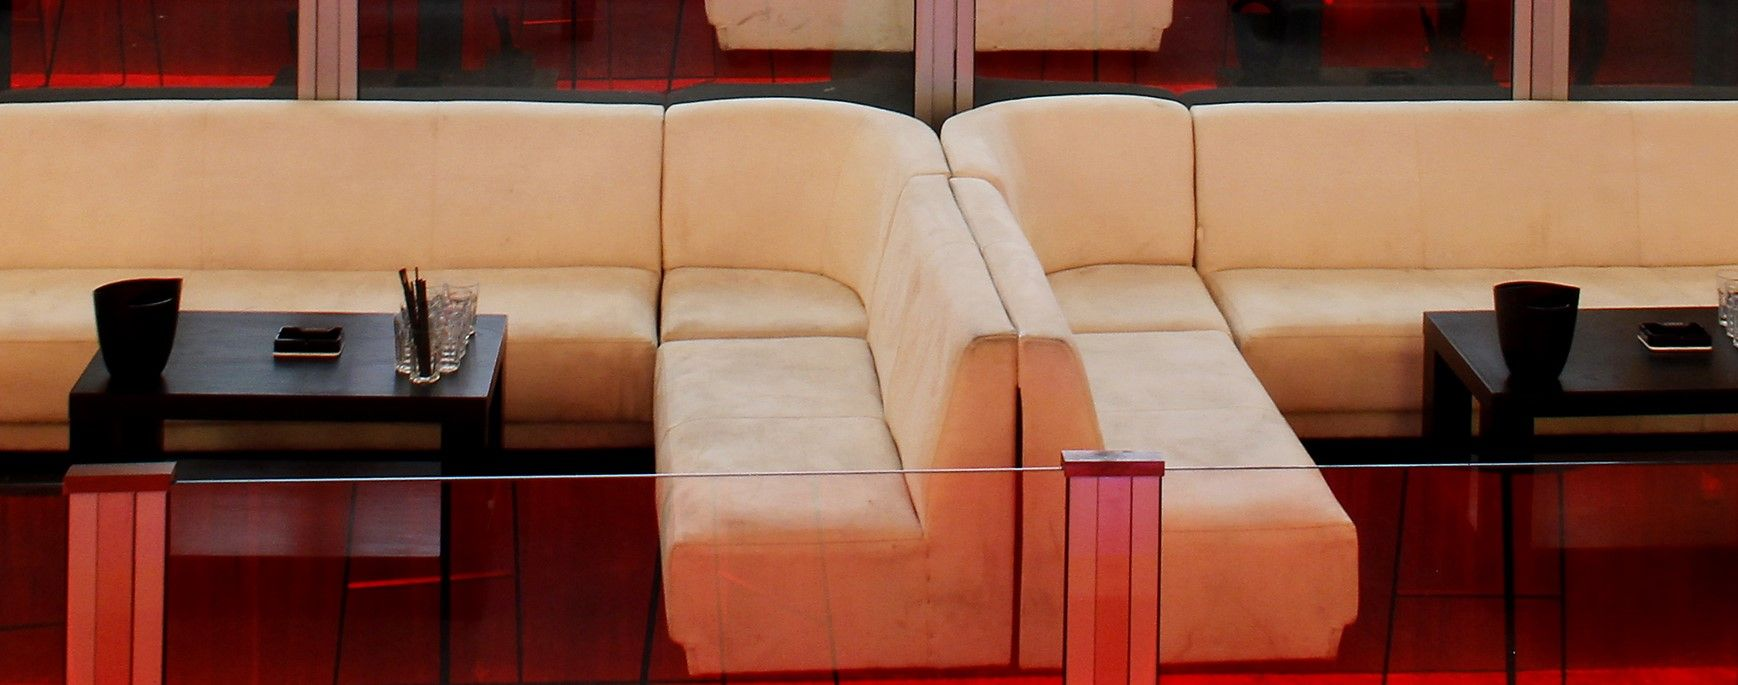 Commercial seating from smfoam